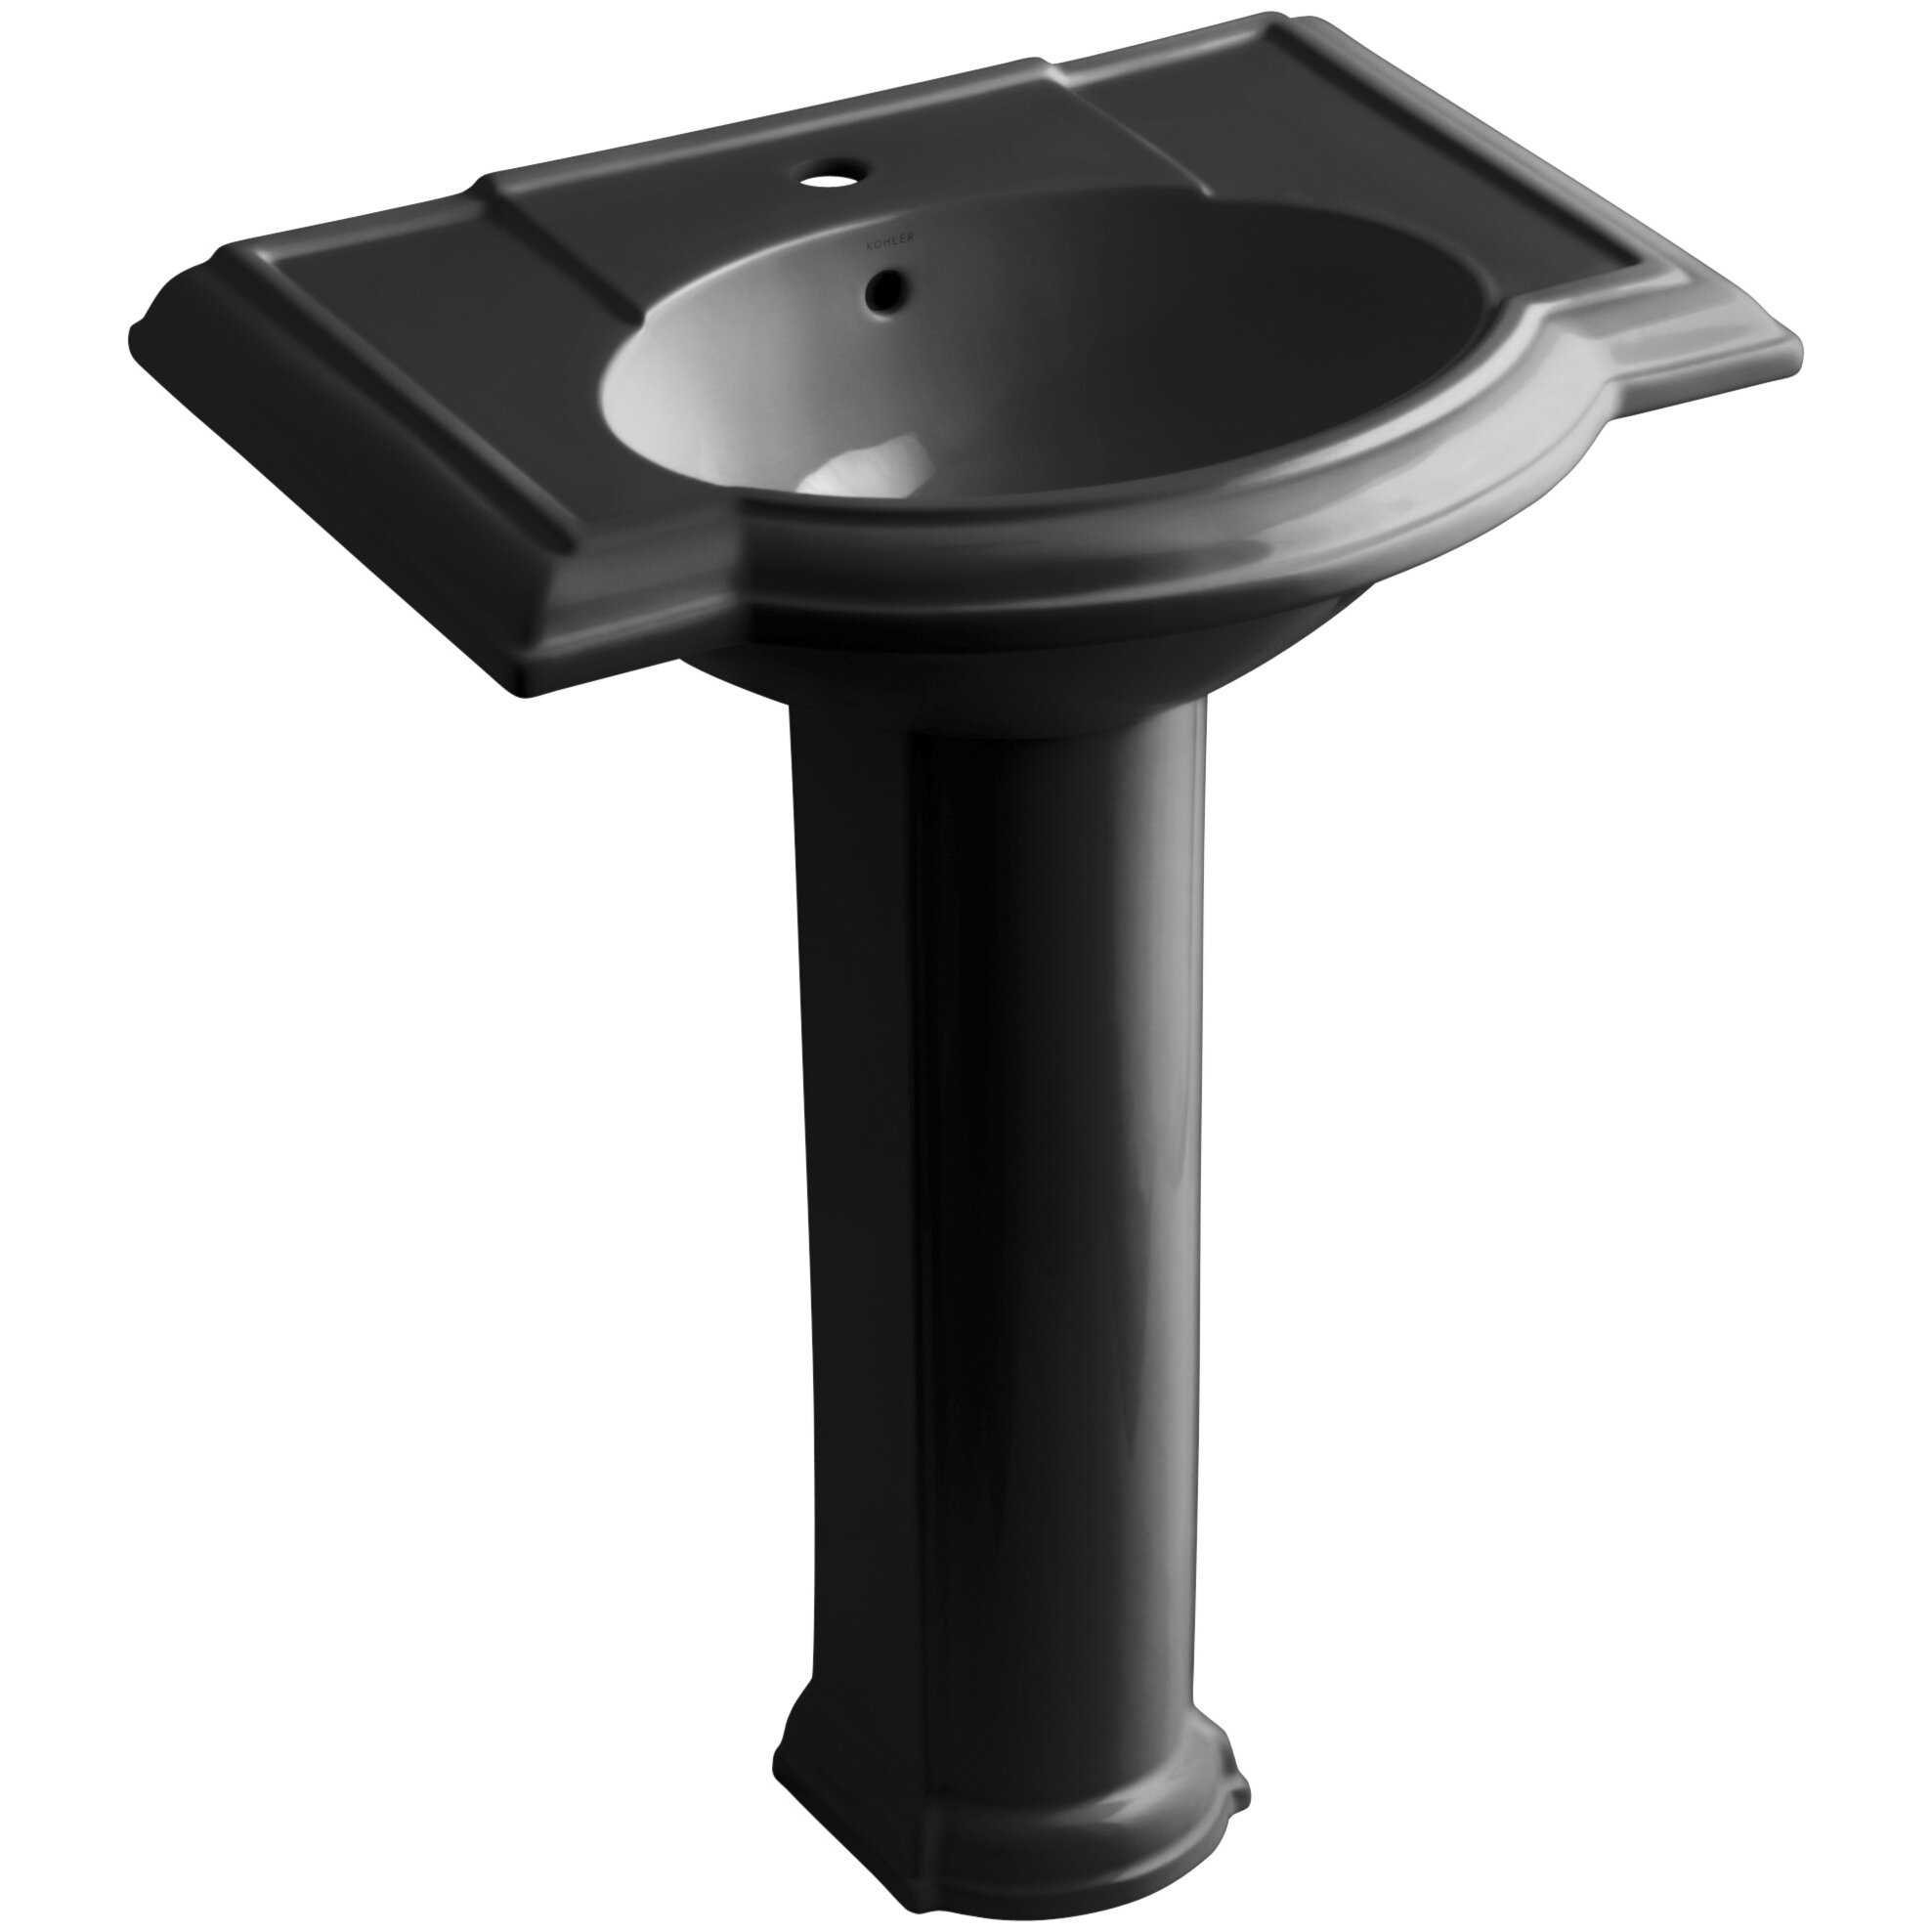 Devonshire 27 Quot Pedestal Bathroom Sink With Single Faucet